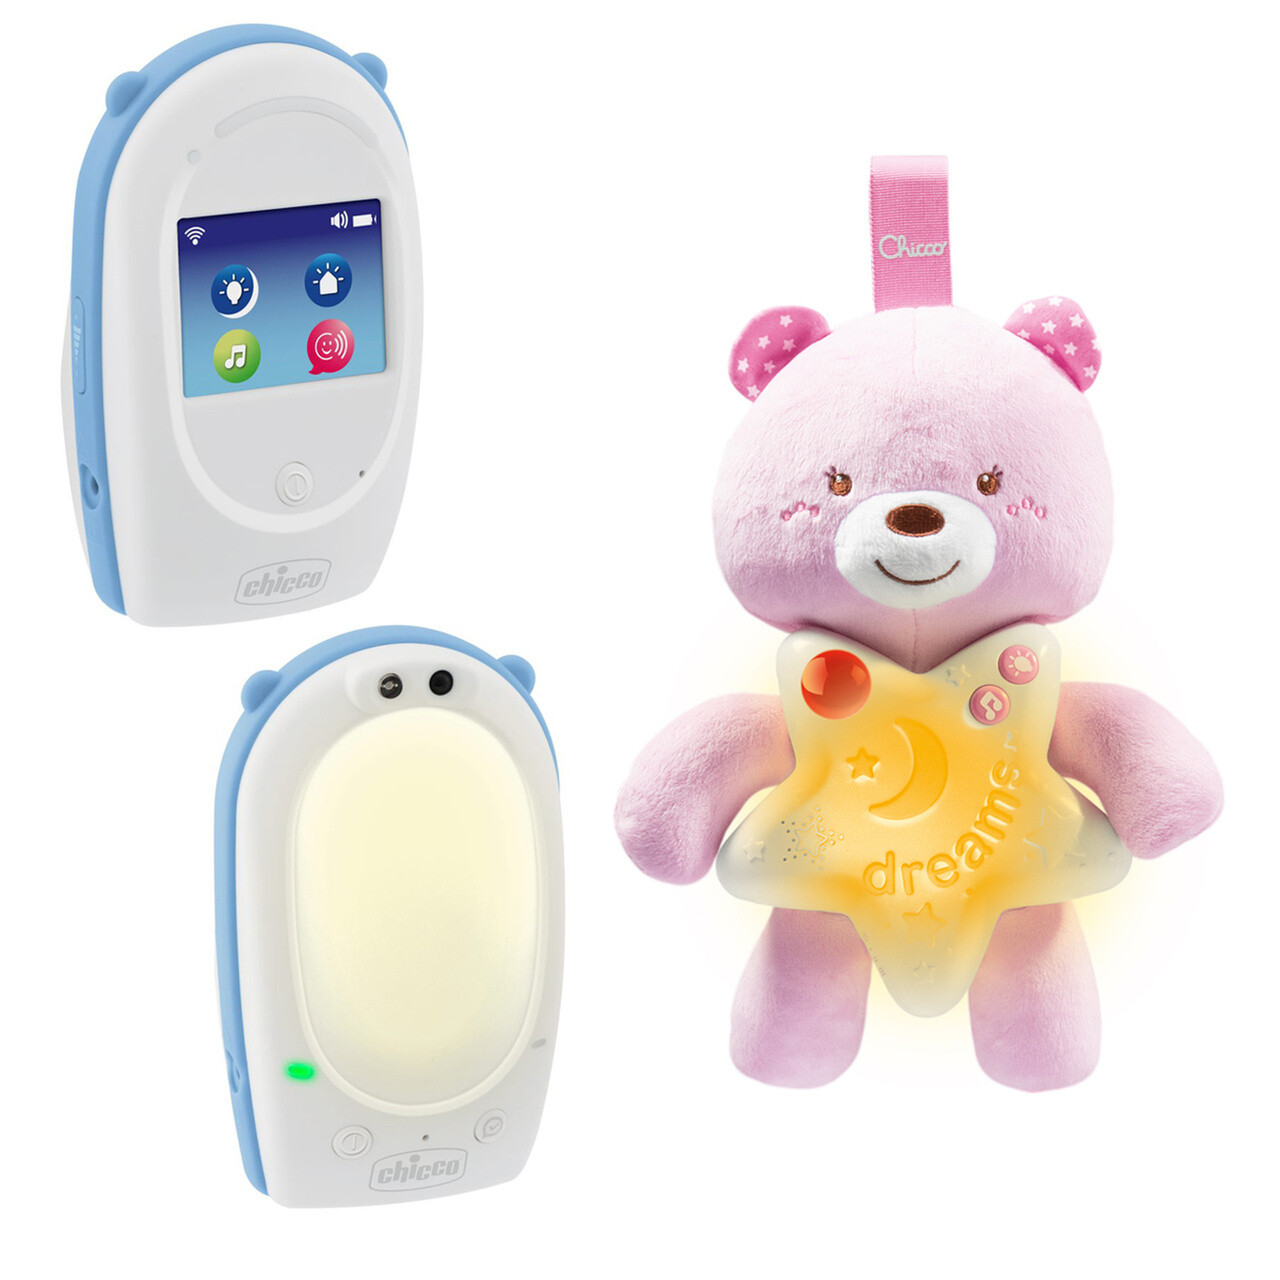 Chicco Babyphone First Dreams weiss / rosa 3-teilig